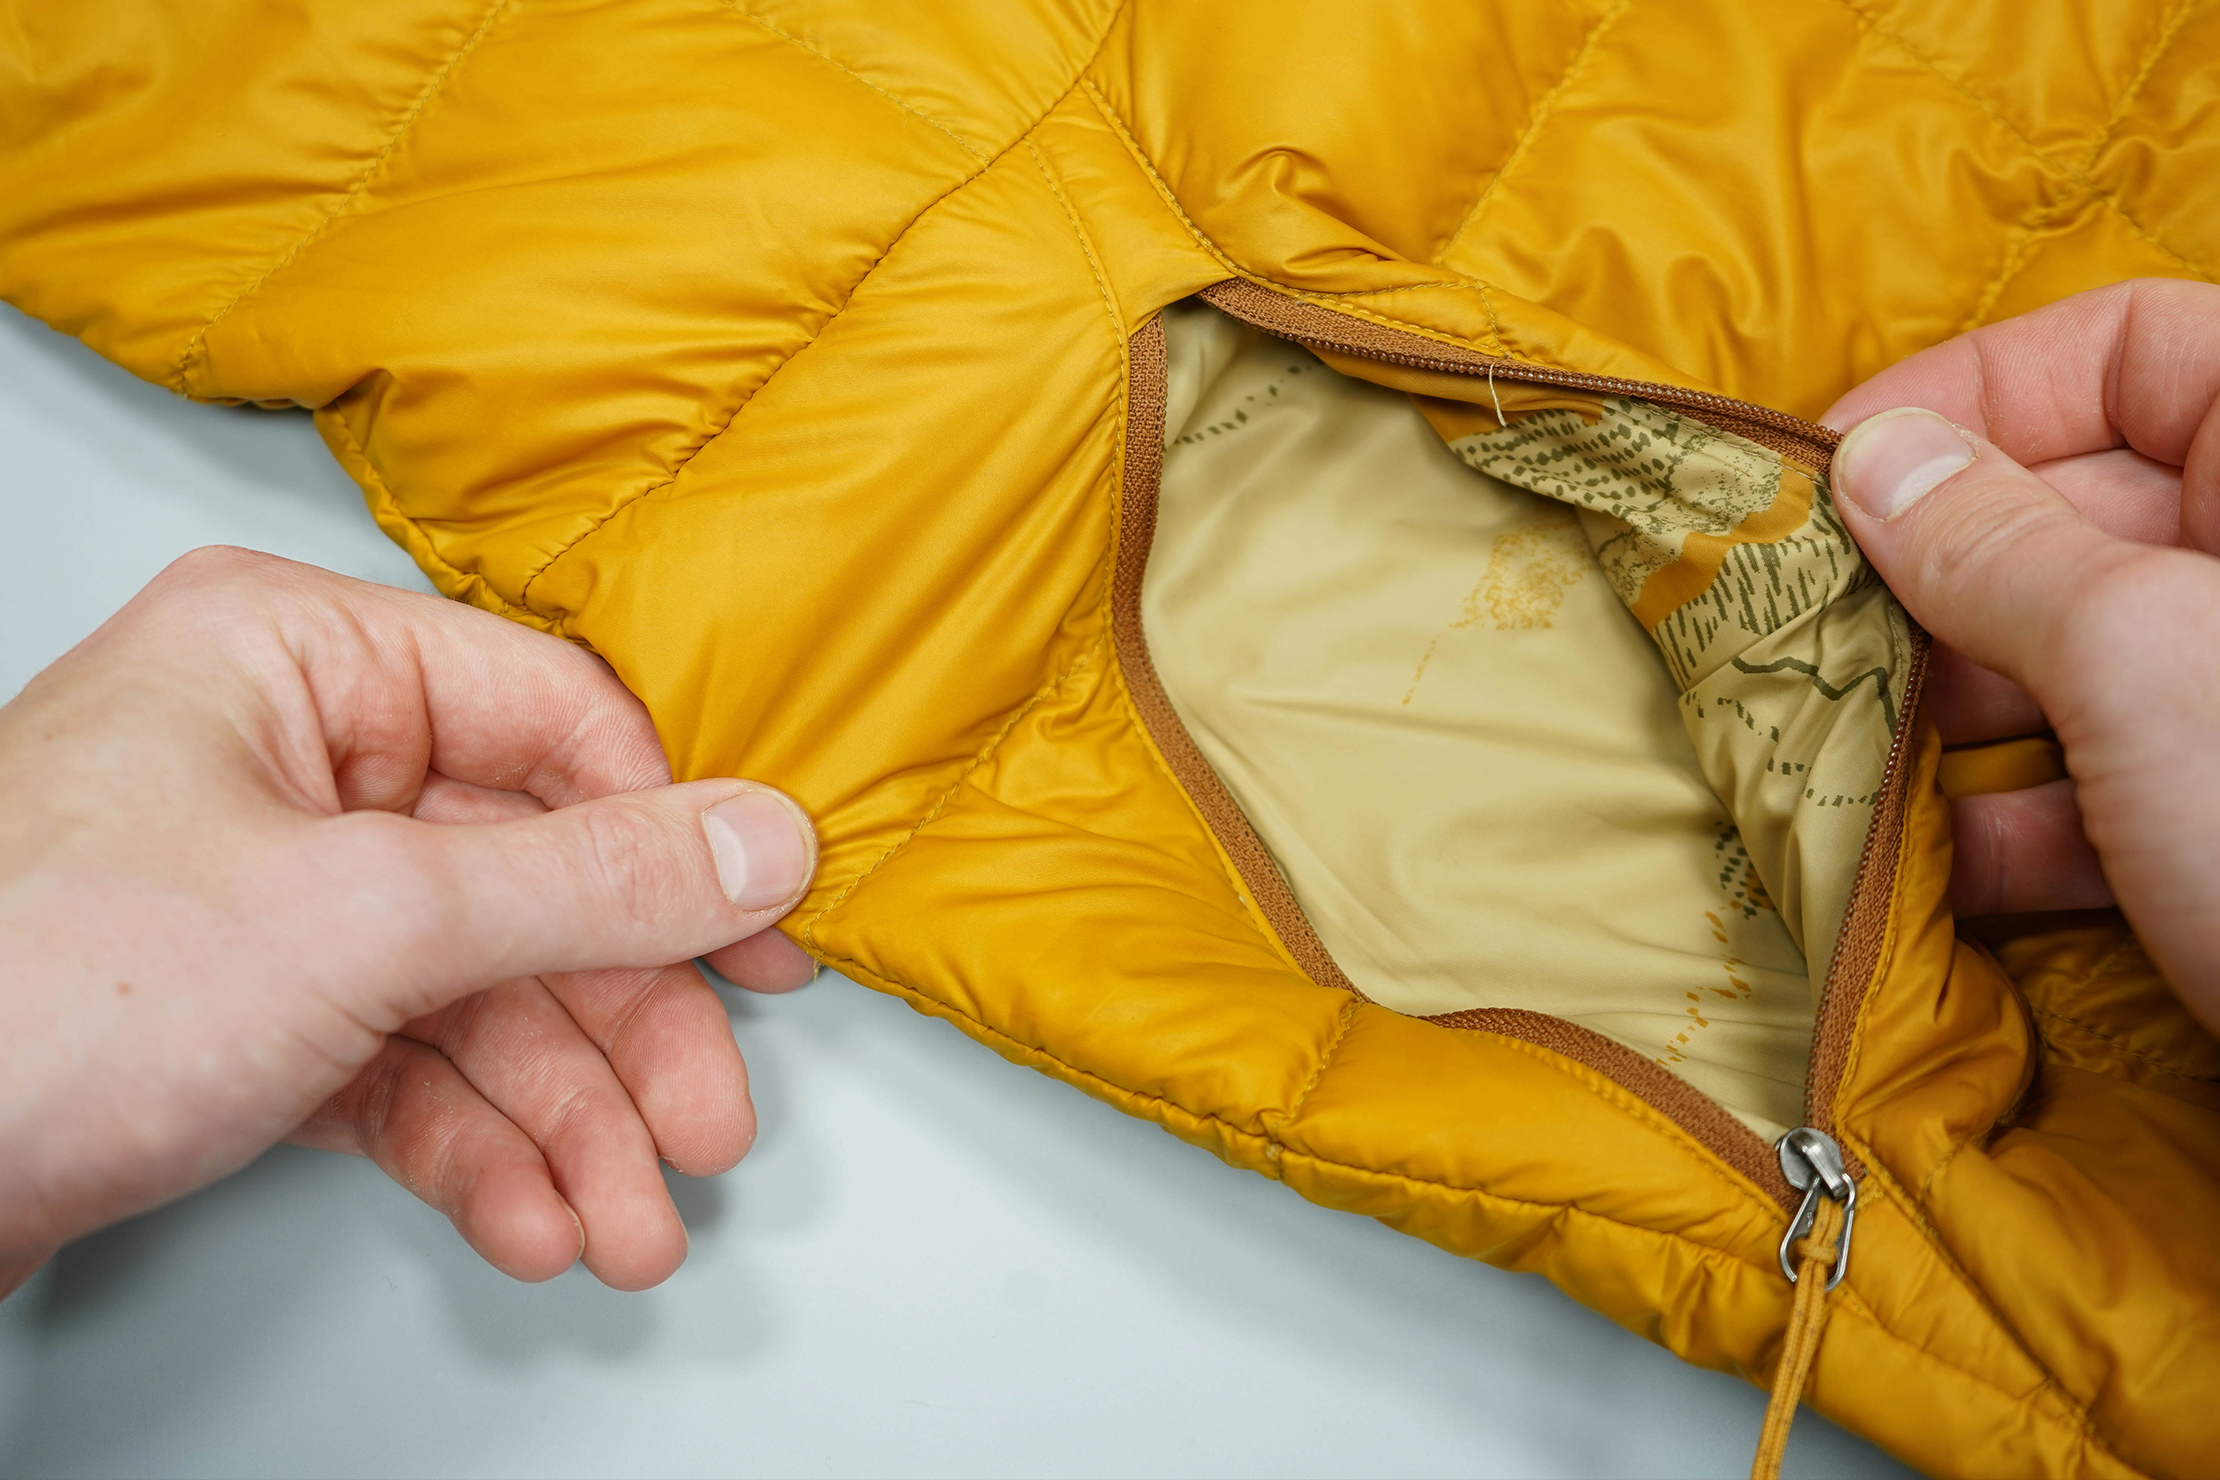 REI 650 Down Jacket 2.0 Front Pockets